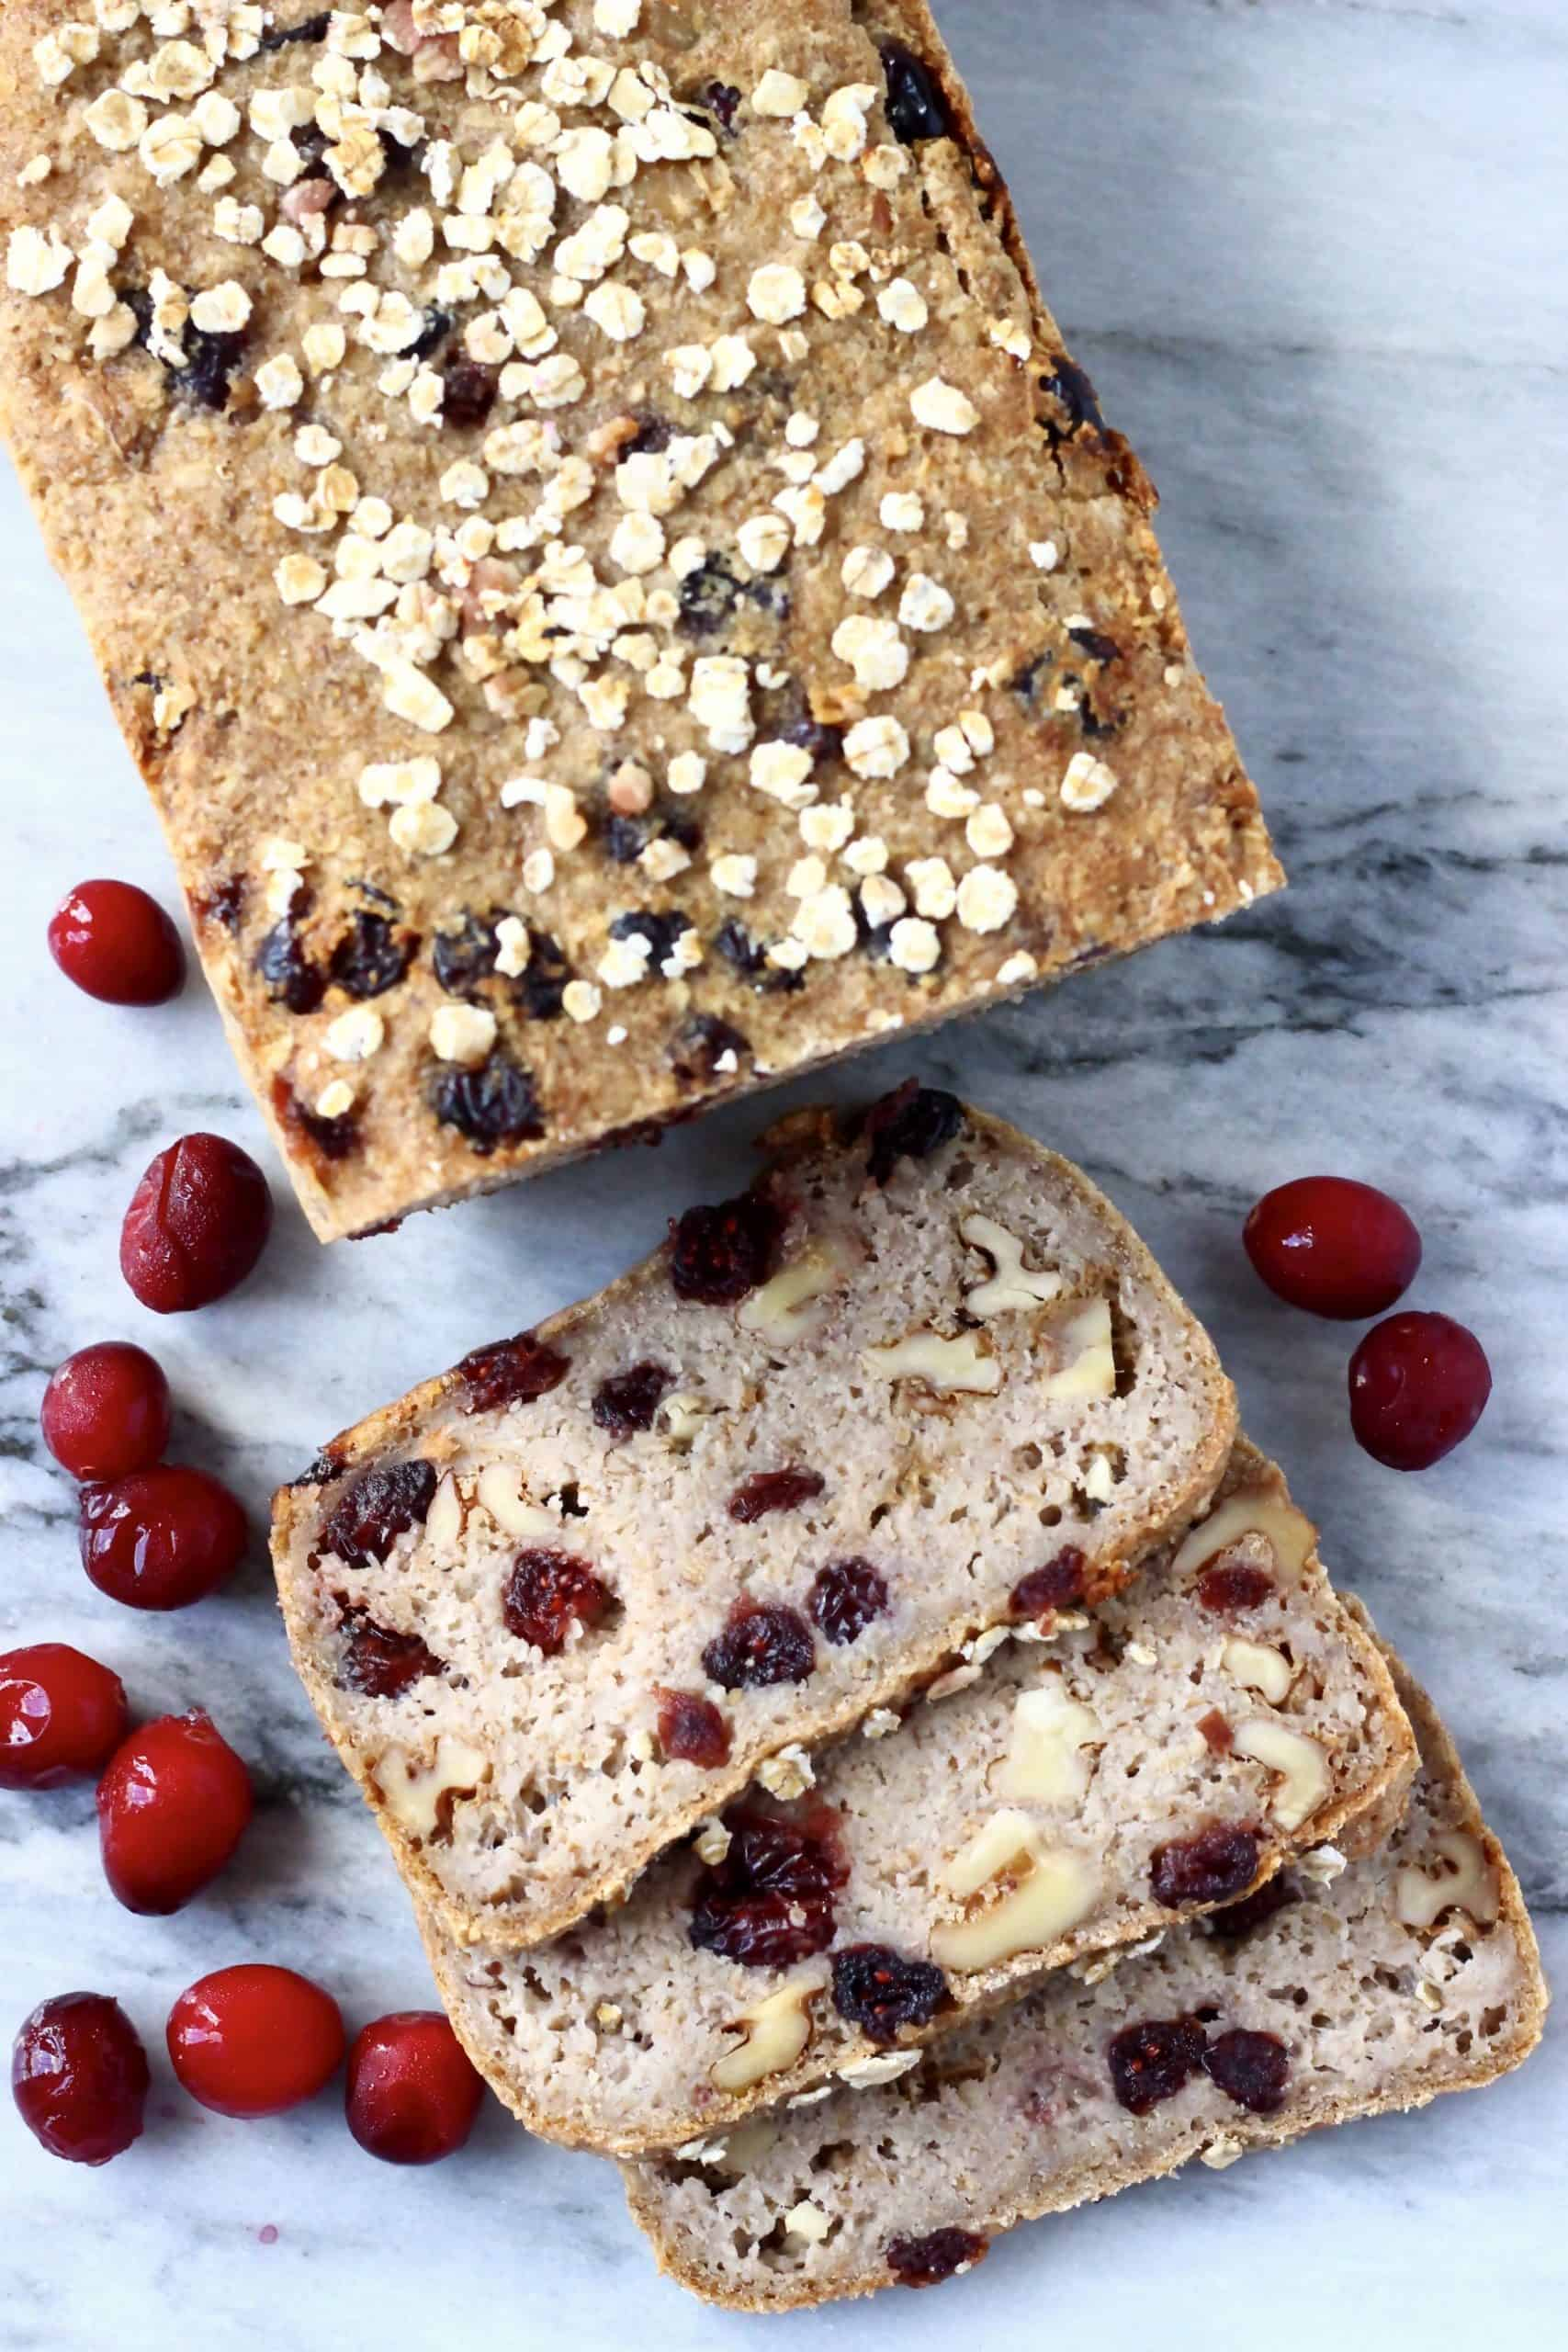 A loaf of brown bread with cranberries sprinkled with oats with three slices cut from it on a marble background scattered with fresh cranberries